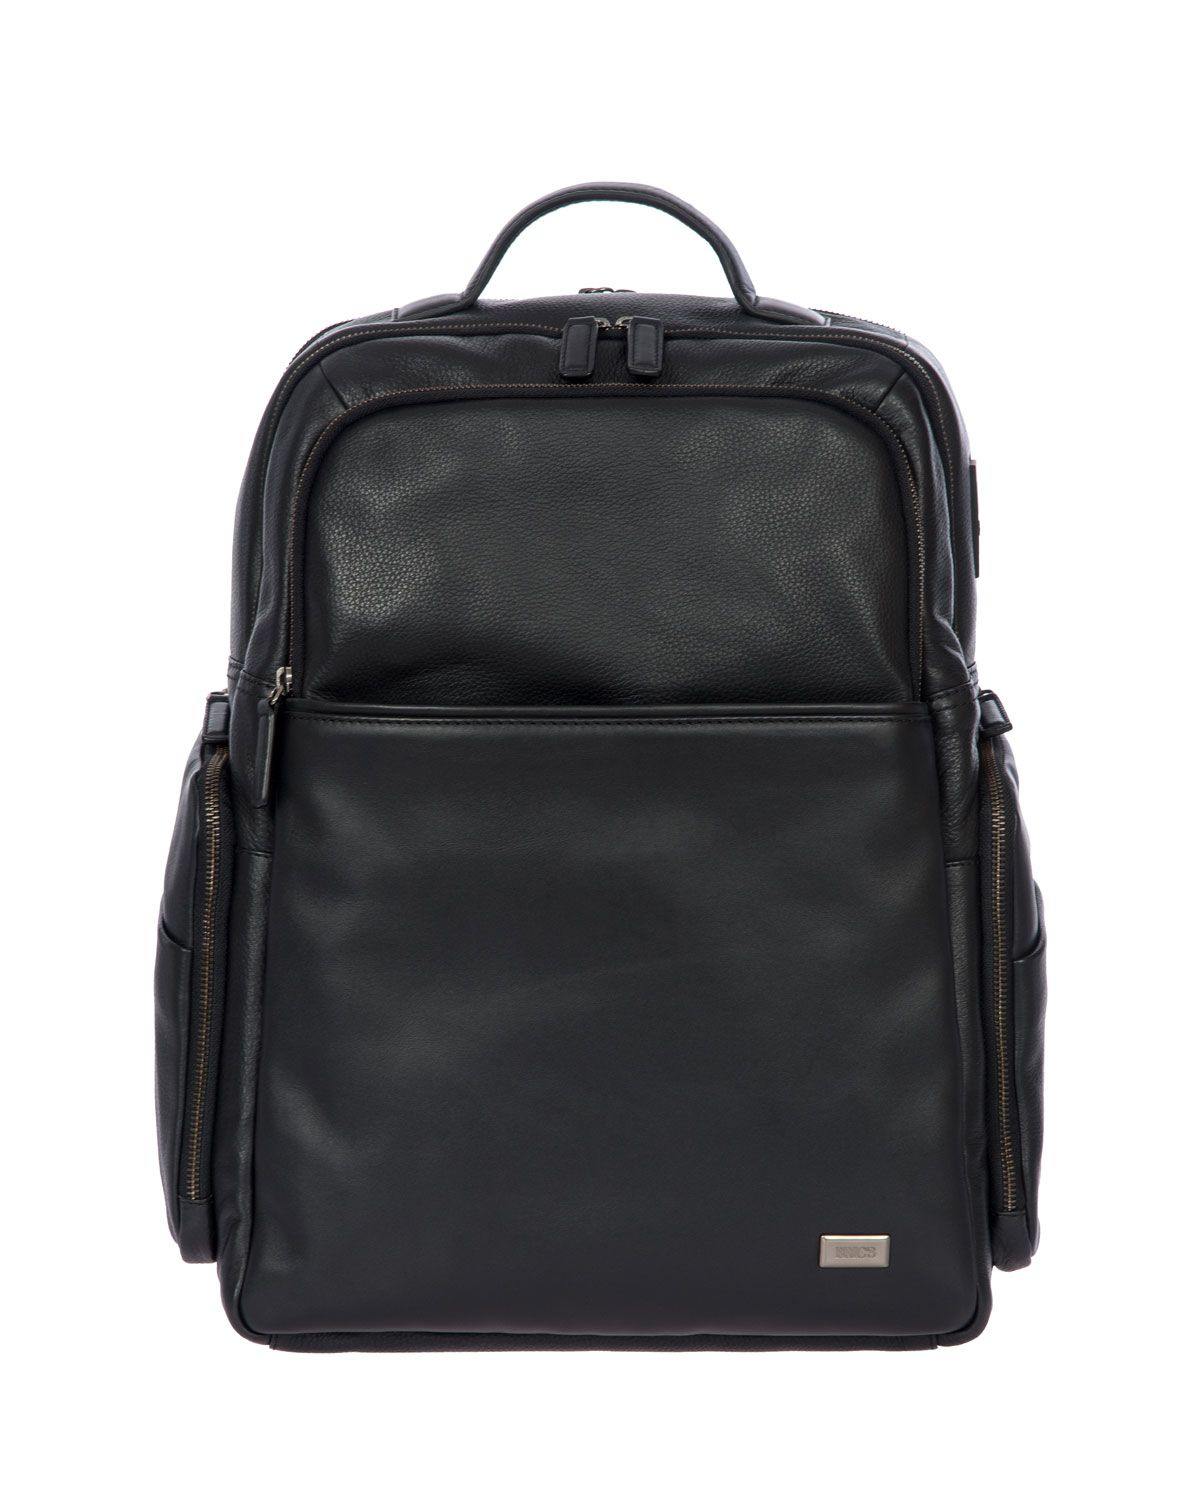 2517113d2c BRIC S TORINO MEN S LARGE LEATHER BUSINESS BACKPACK.  brics  bags  leather   backpacks